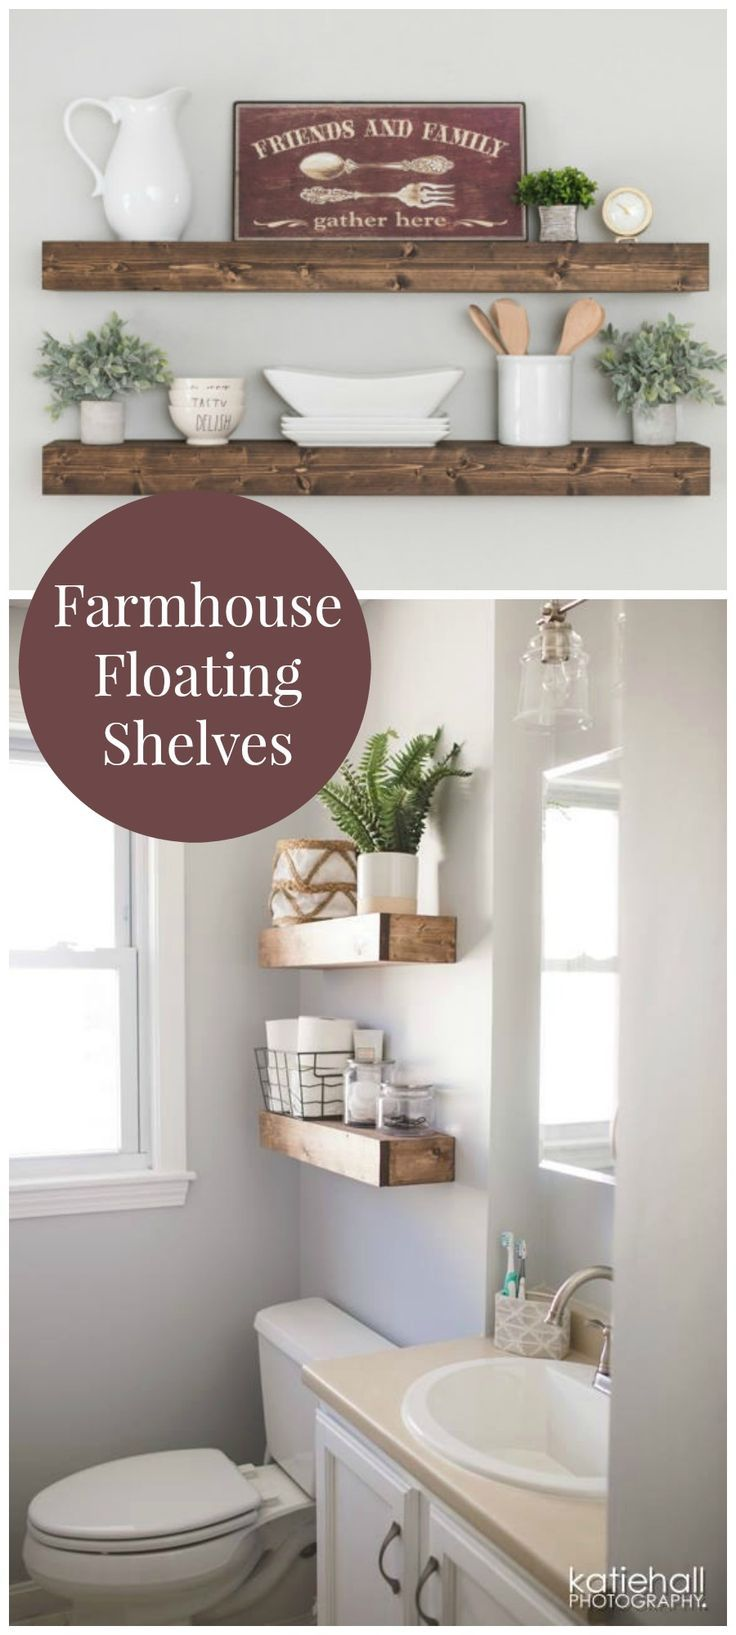 Floating shelves kitchen  These shelves are absolutely beautiful Exactly what I was looking